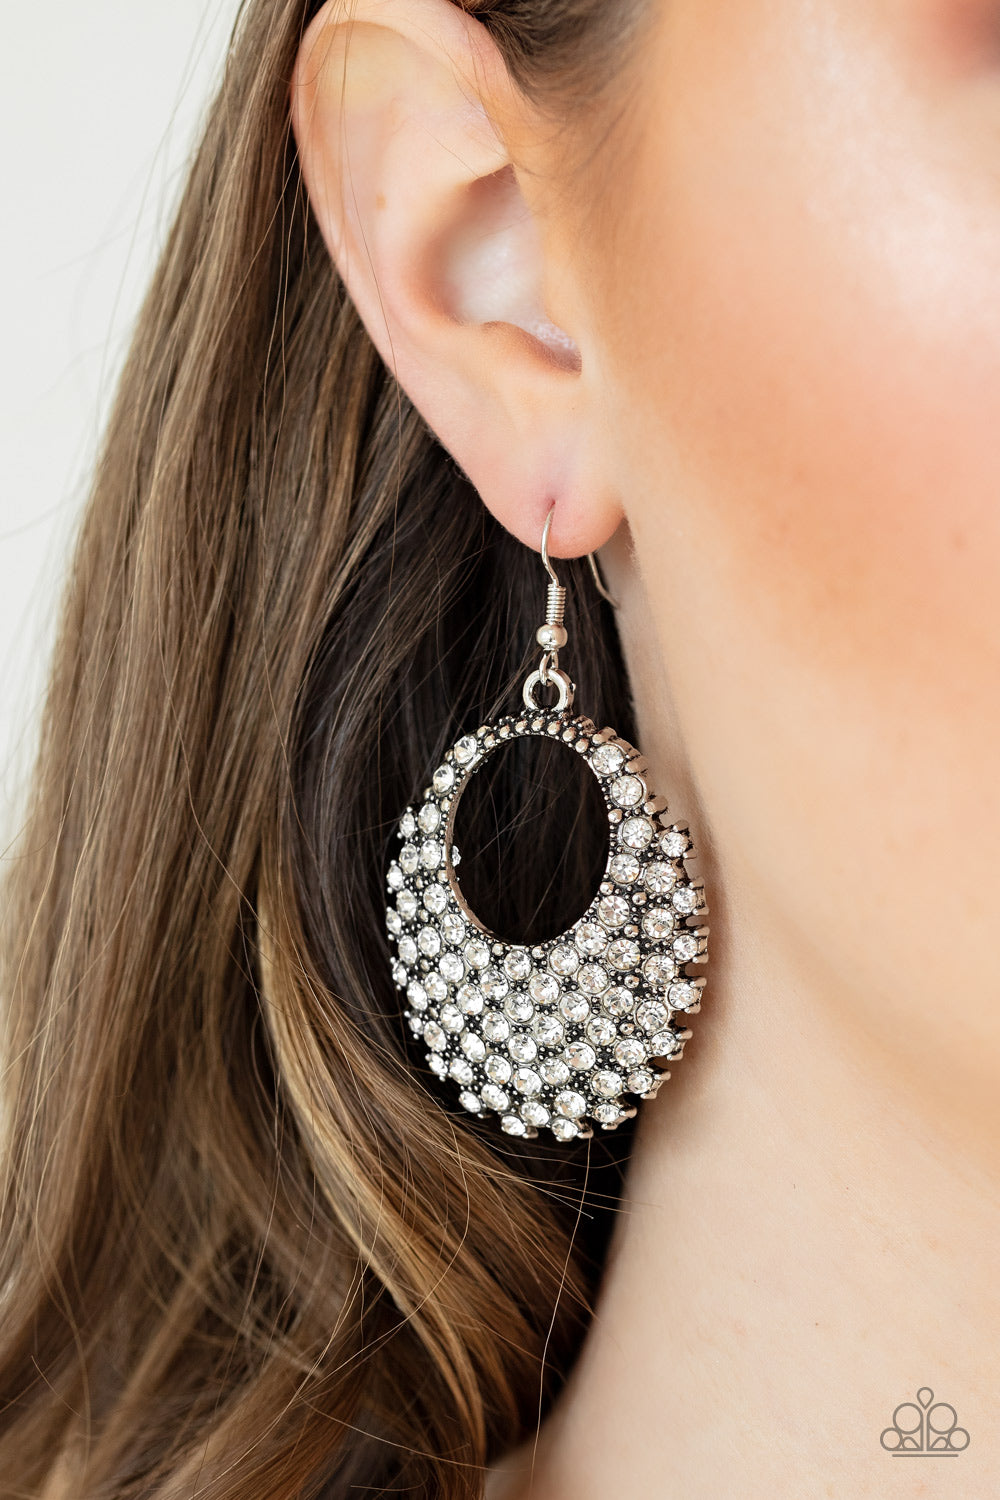 Paparazzi Jewelry & Accessories Fierce Flash White Rhinestones Earrings. Bling By Titia